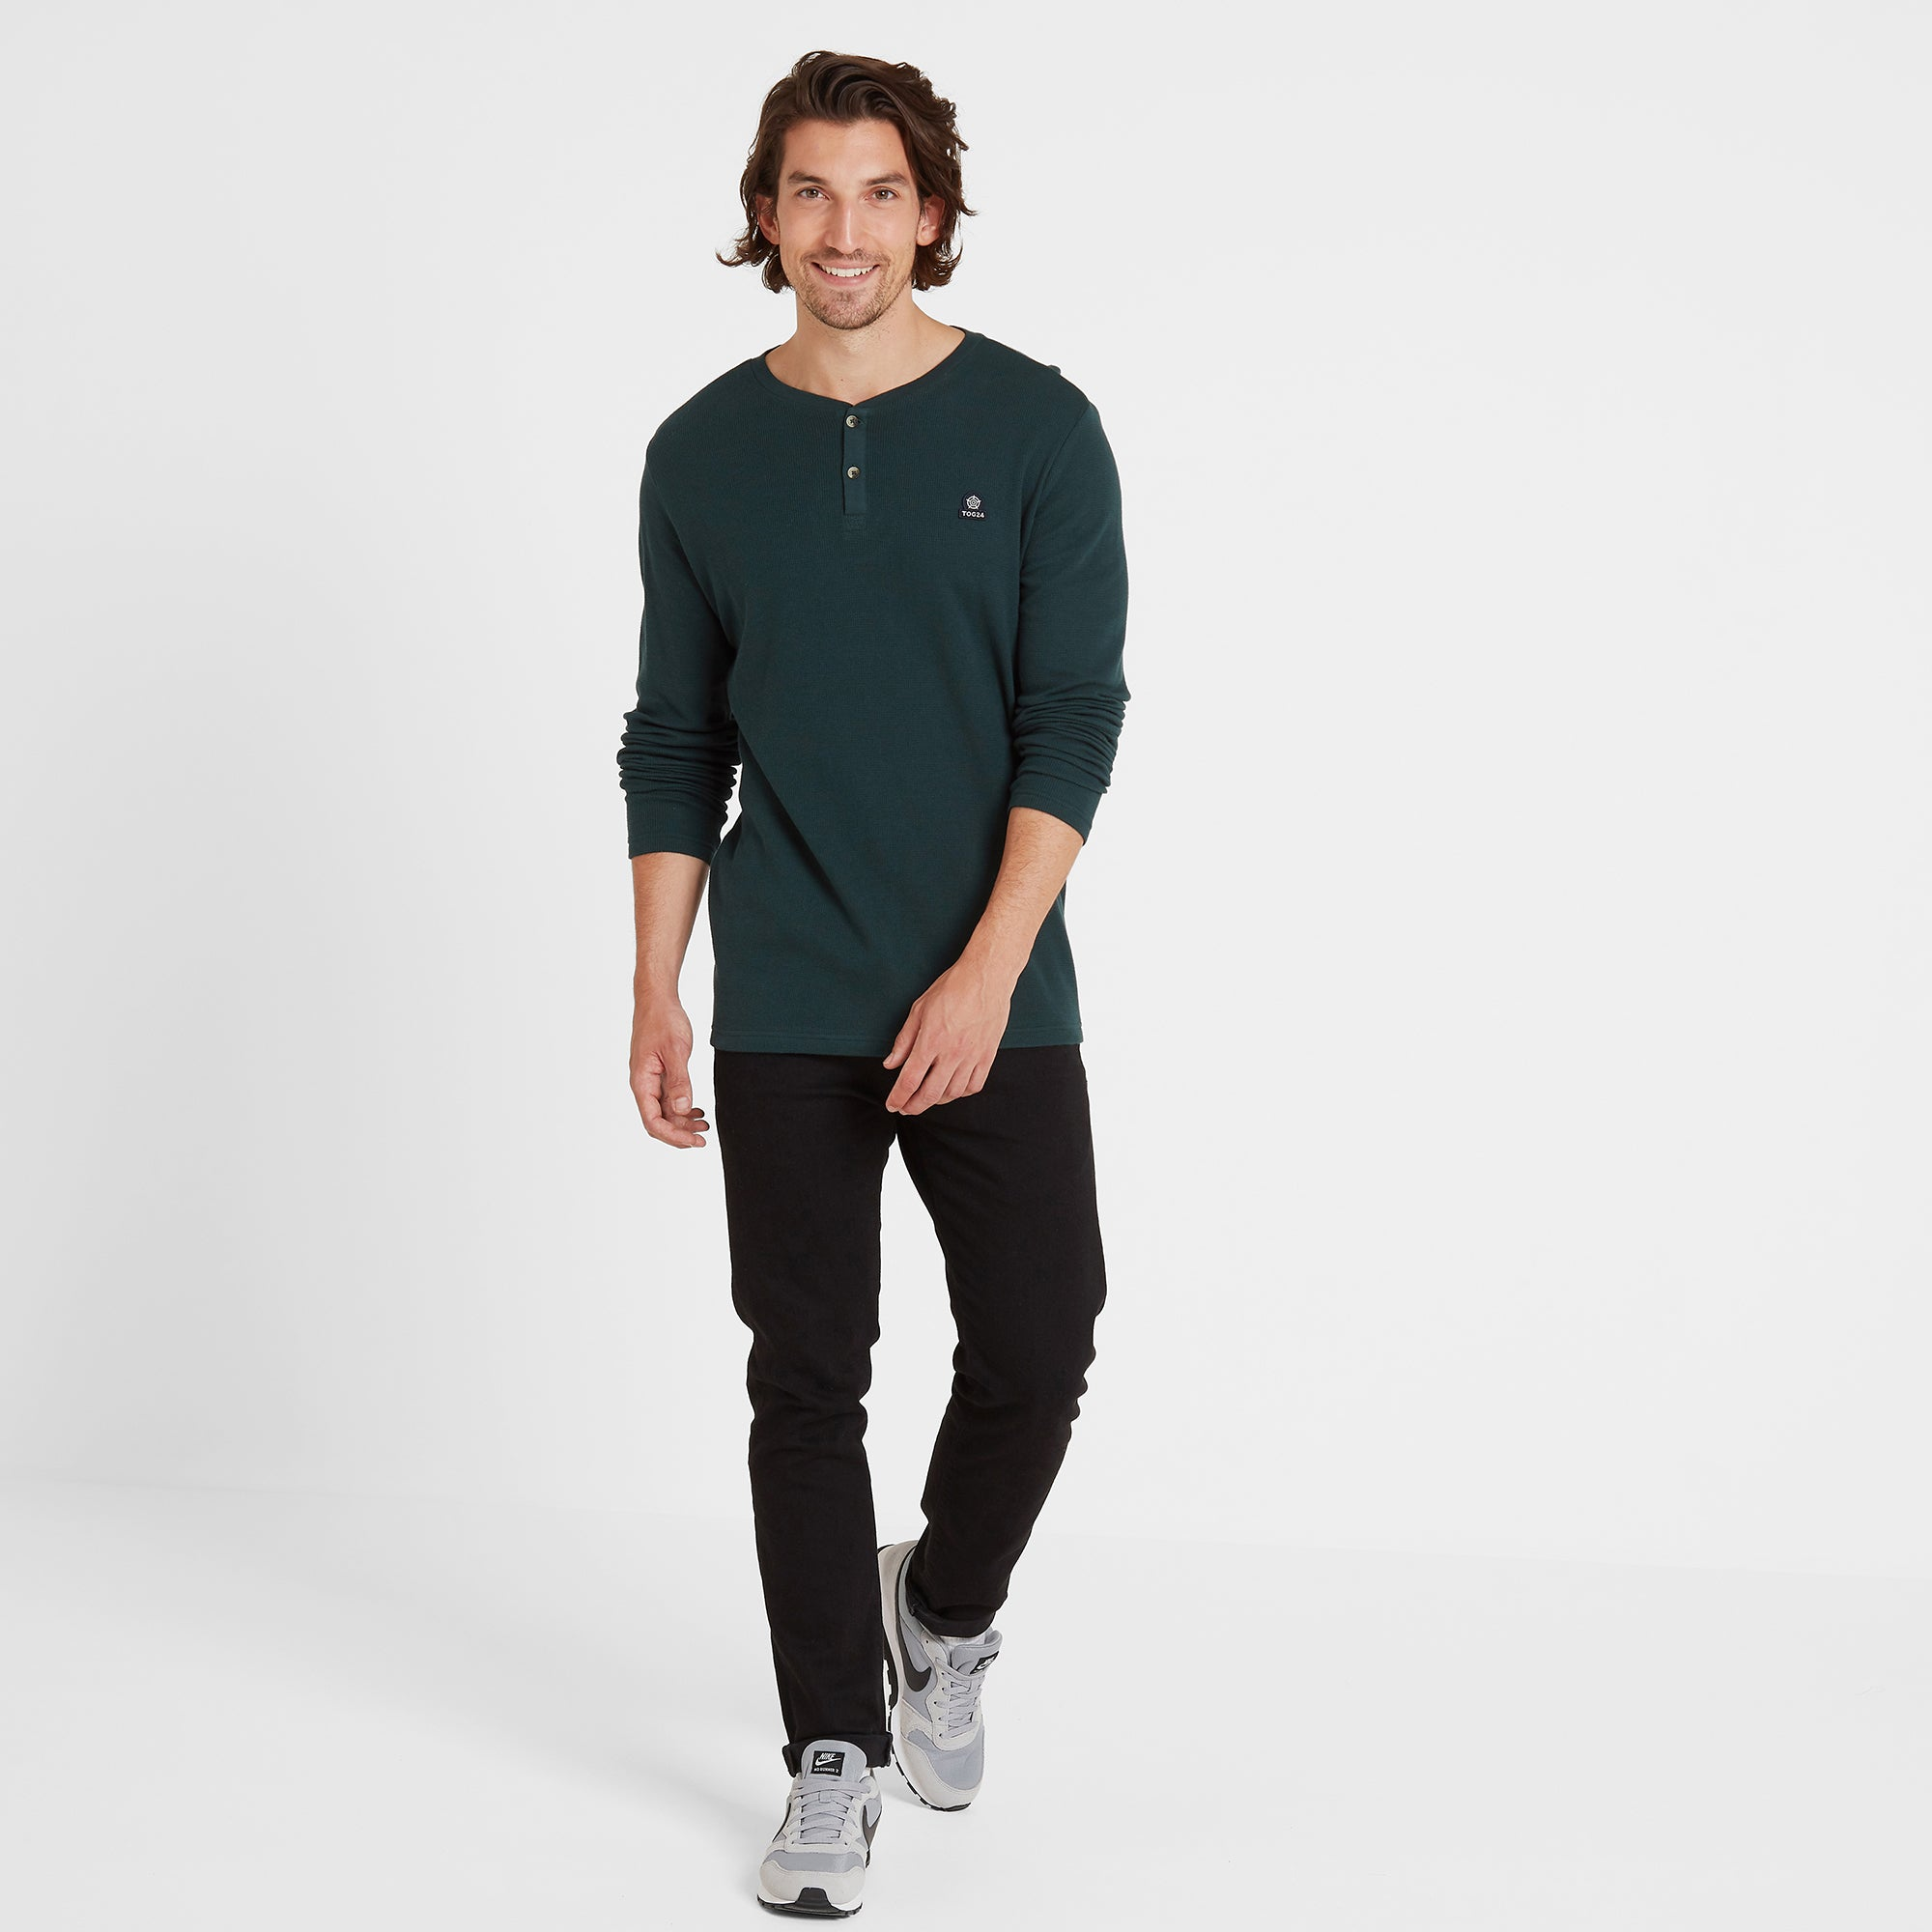 Drewton Mens Grandad Collar T-Shirt - Dark Teal